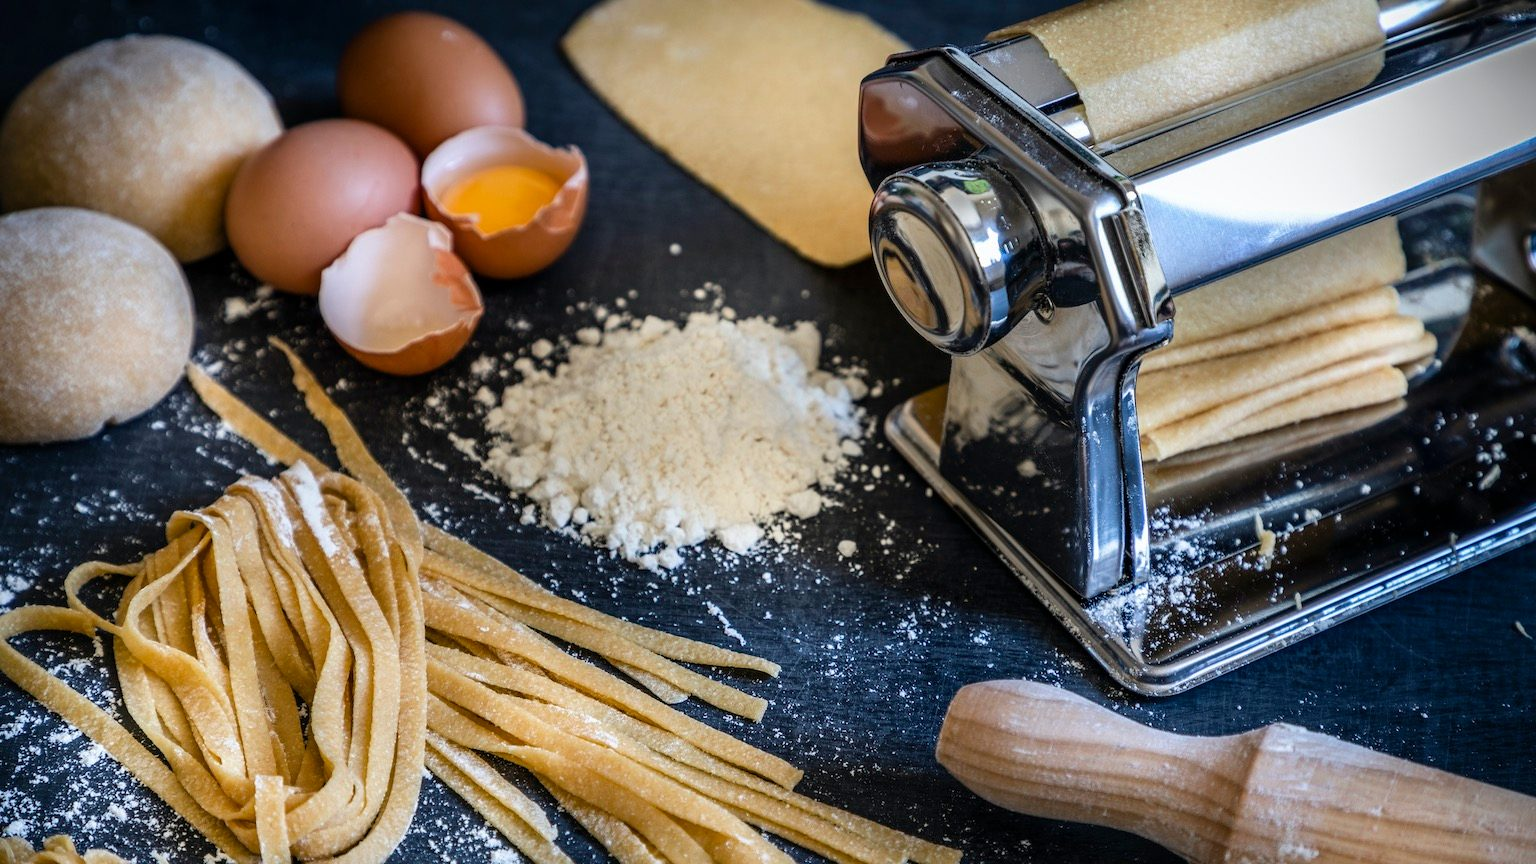 Front view of a homemade pasta machine surrounded by the ingredients for making pasta like eggs and flour. Low key DSLR photo taken with Canon EOS 6D Mark II and Canon EF 24-105 mm f/4L